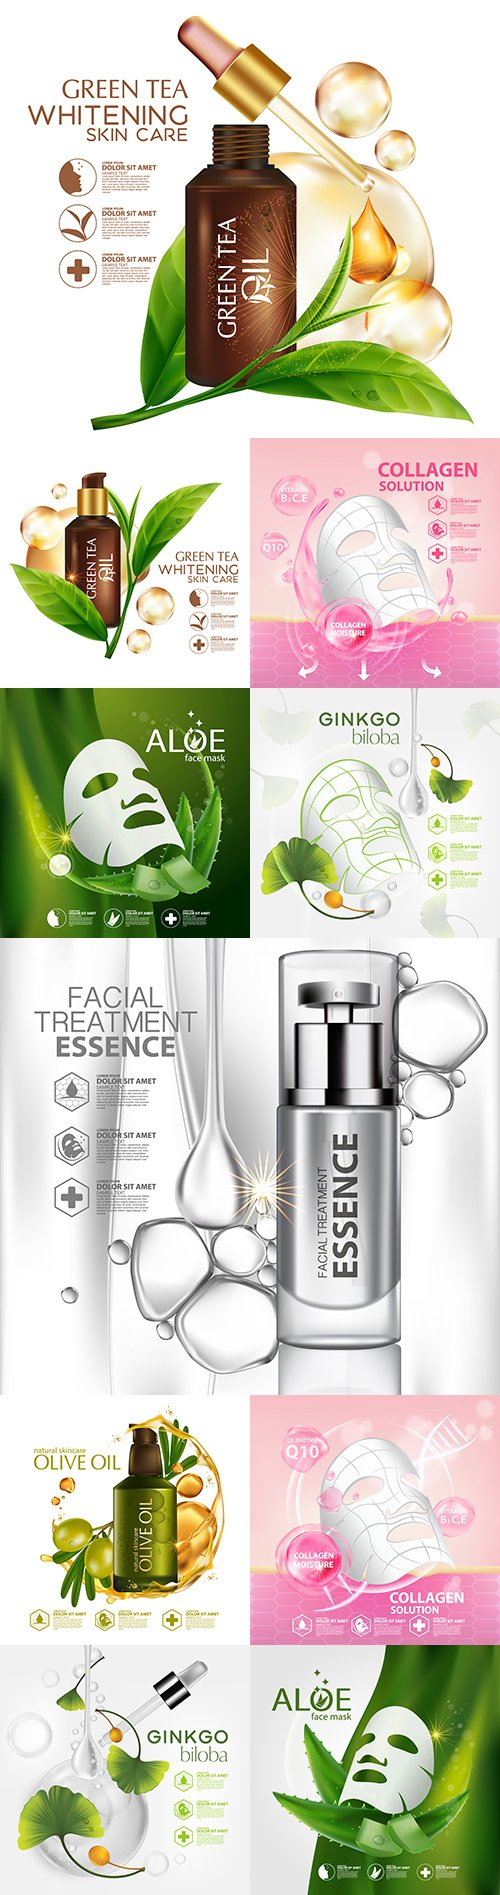 Skin care cosmetics with natural ingredients is realistic illustration 4